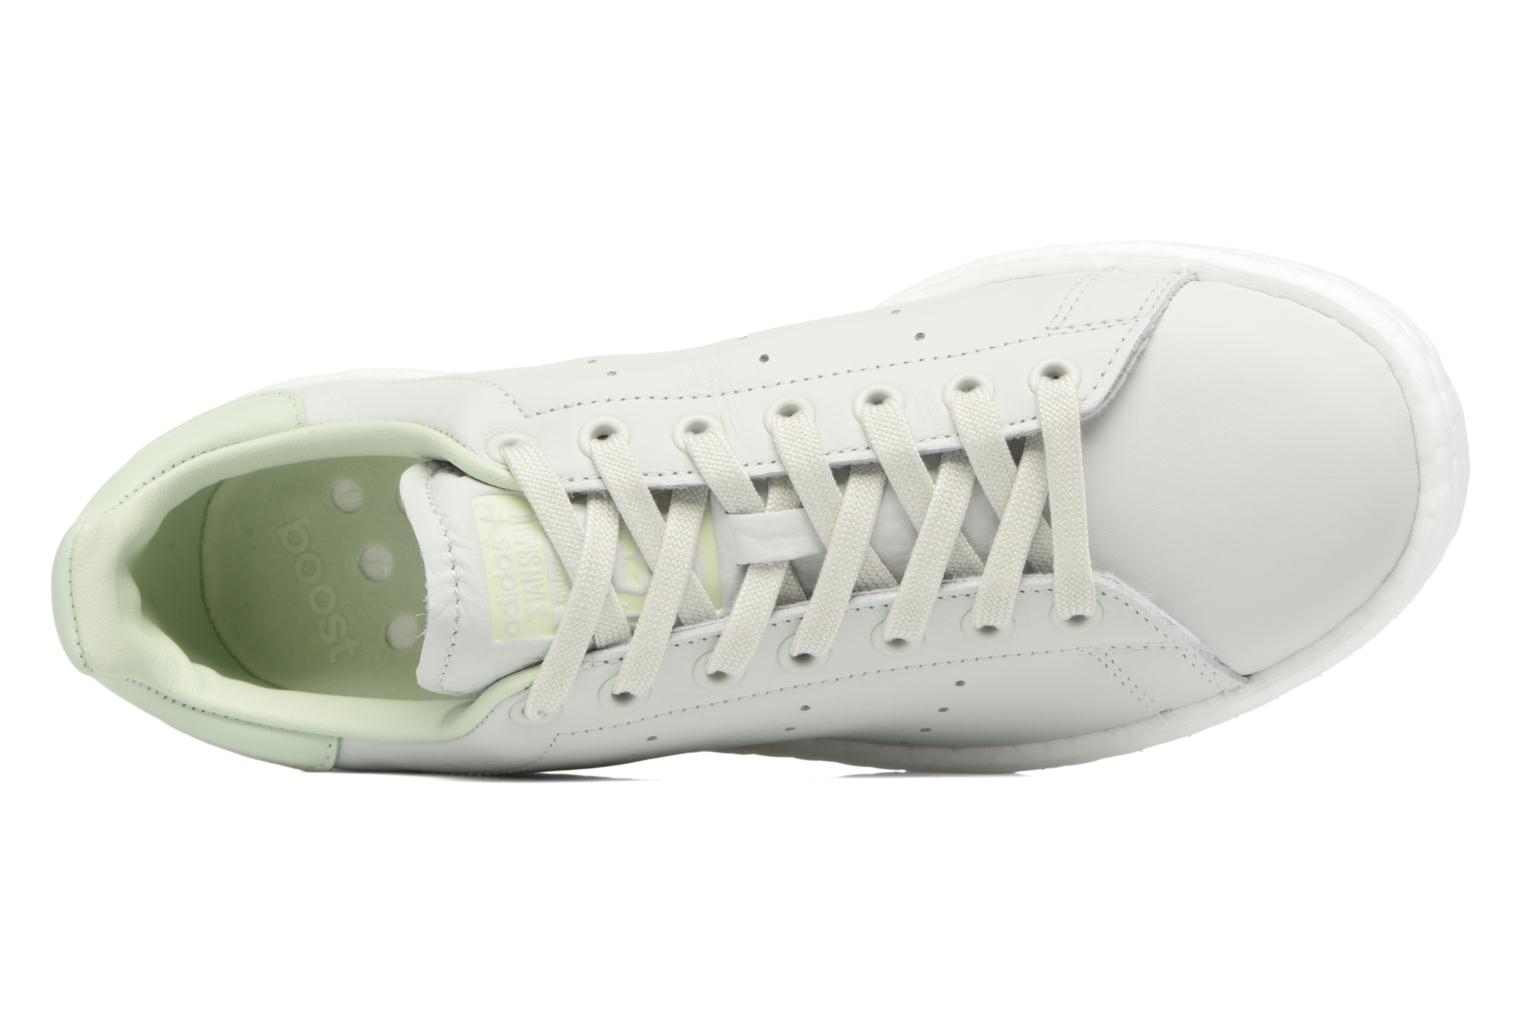 Stan Smith Verlin/Verlin/Verlin